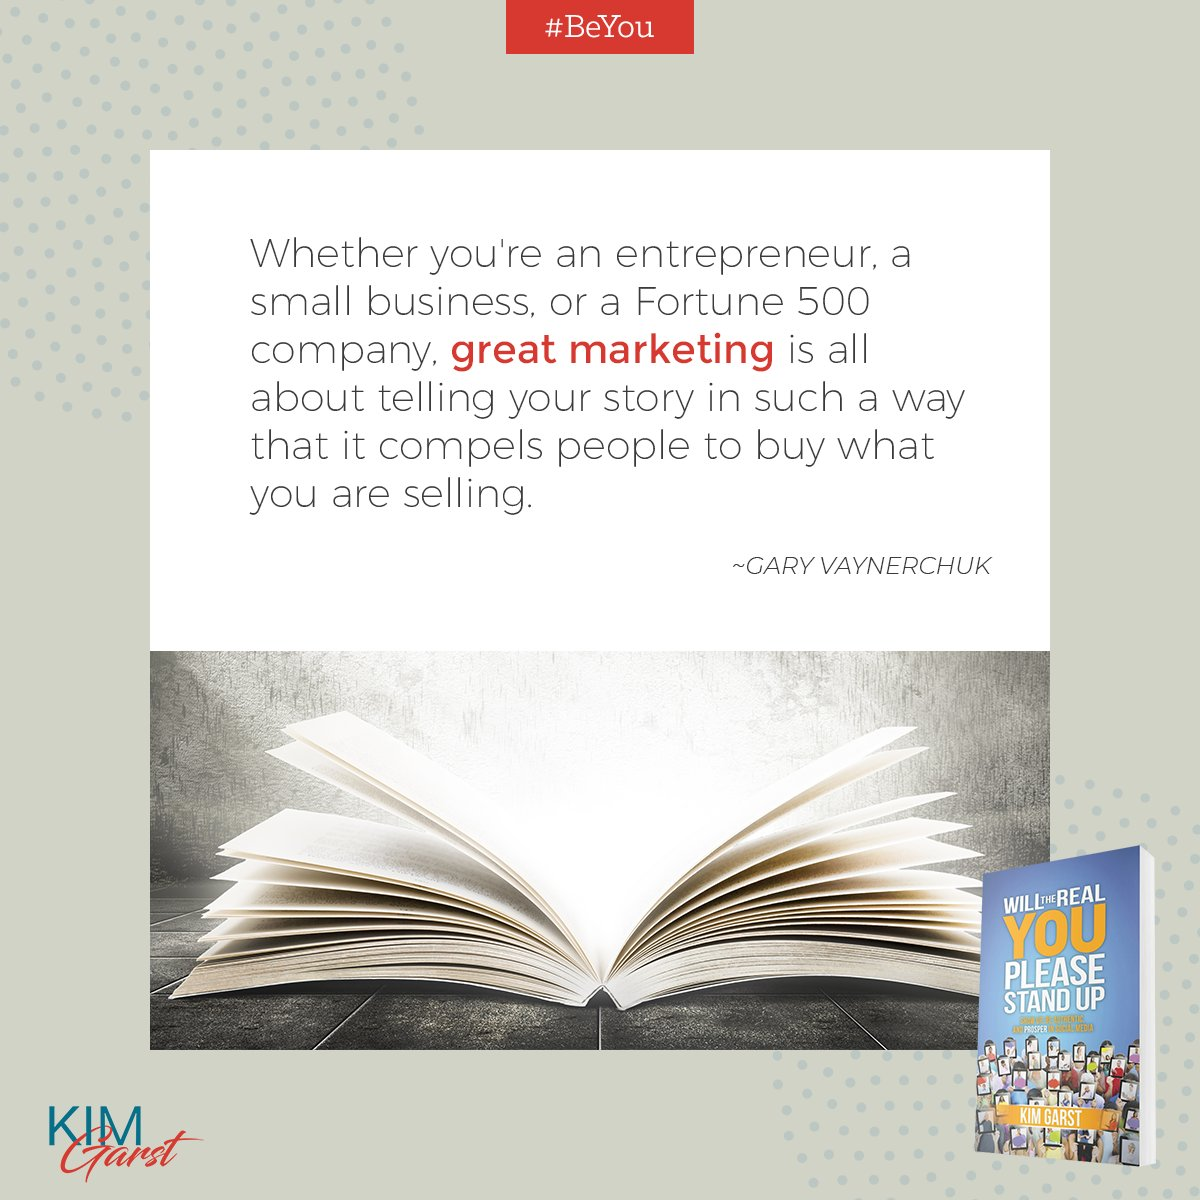 Tell your story in a way that encourages people to buy from you! #BeYou  https:// kimgarst.com/realyoubook     <br>http://pic.twitter.com/lzBY9yPu4N